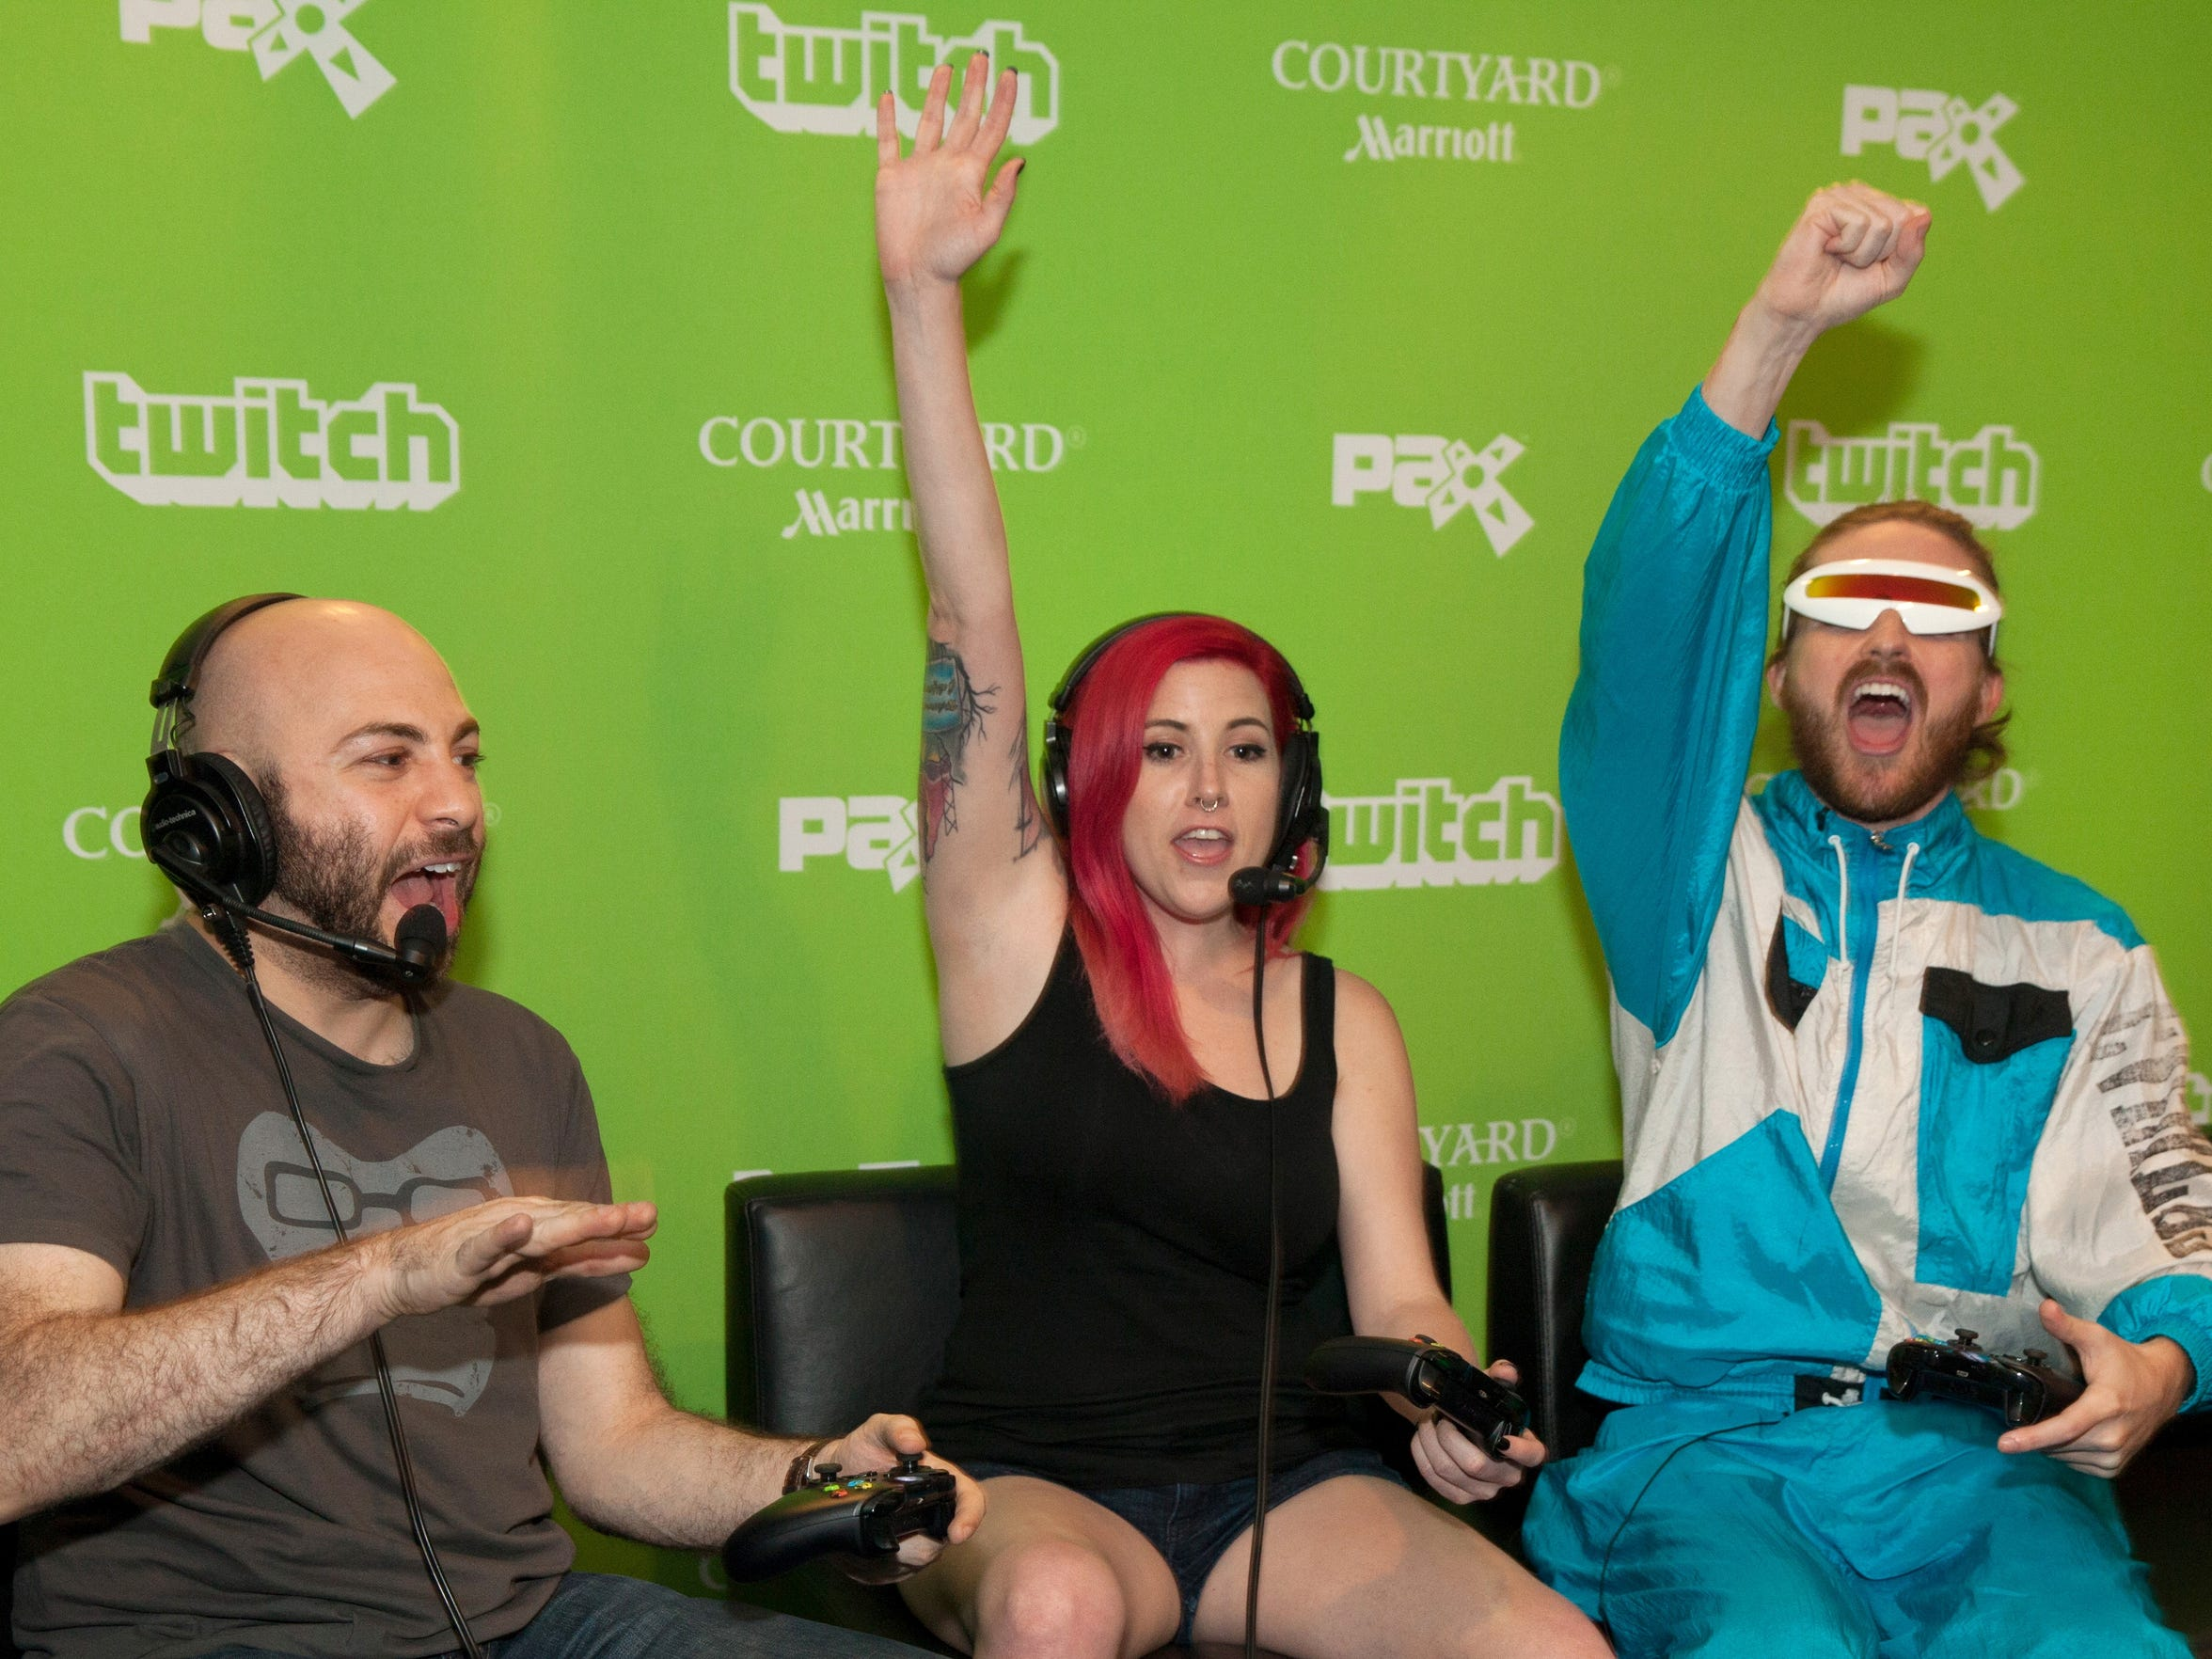 Avid gamers play video games during a Twitch live stream